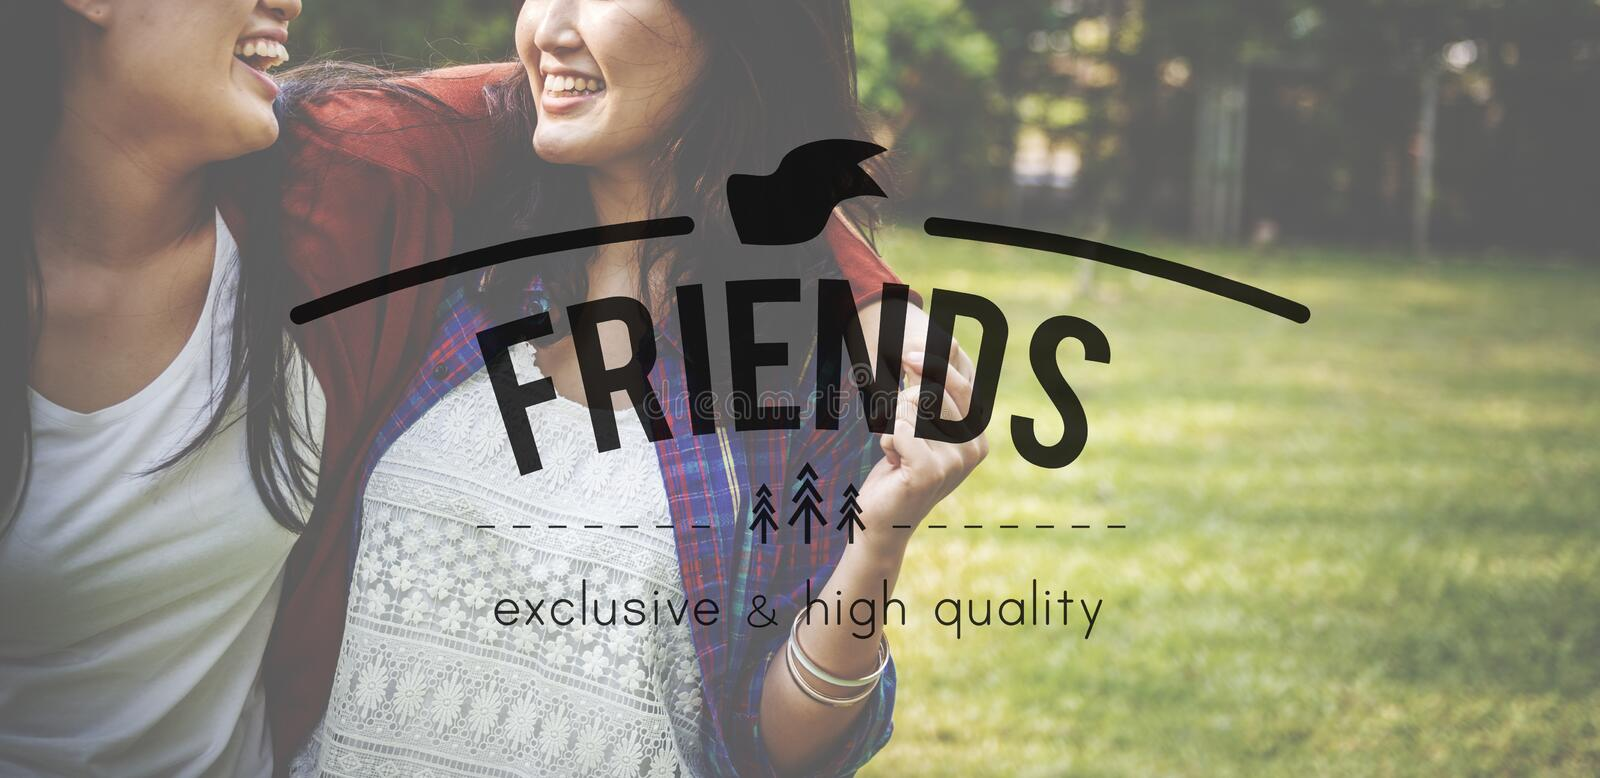 Friends Friendship Relation Companionship Friendliness Concept royalty free stock images